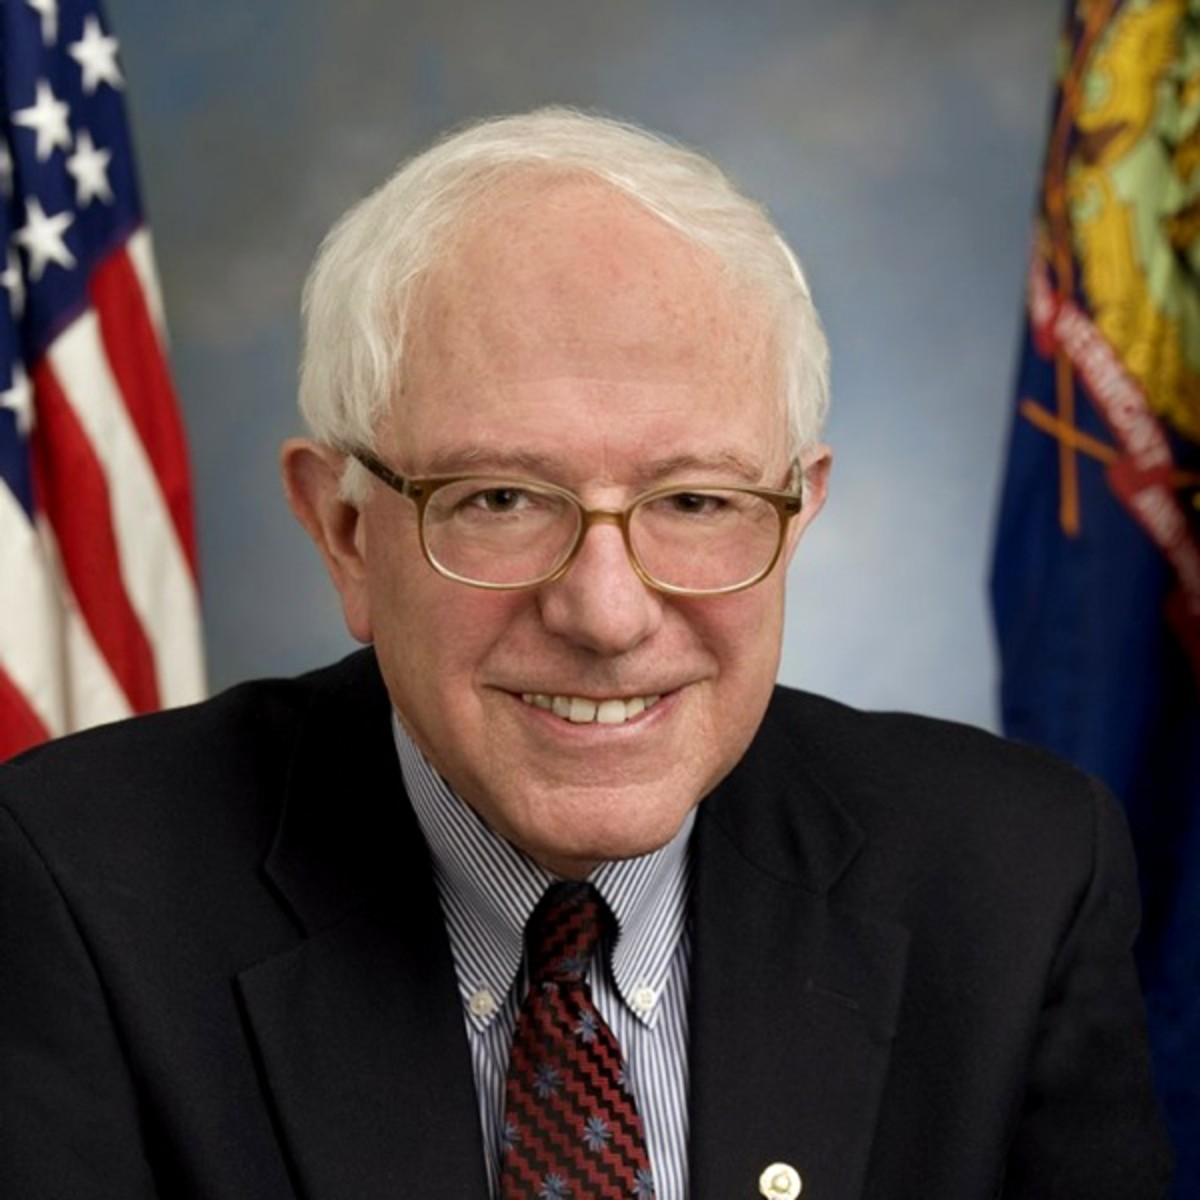 bernie sanders u s representative mayor u s senator biography